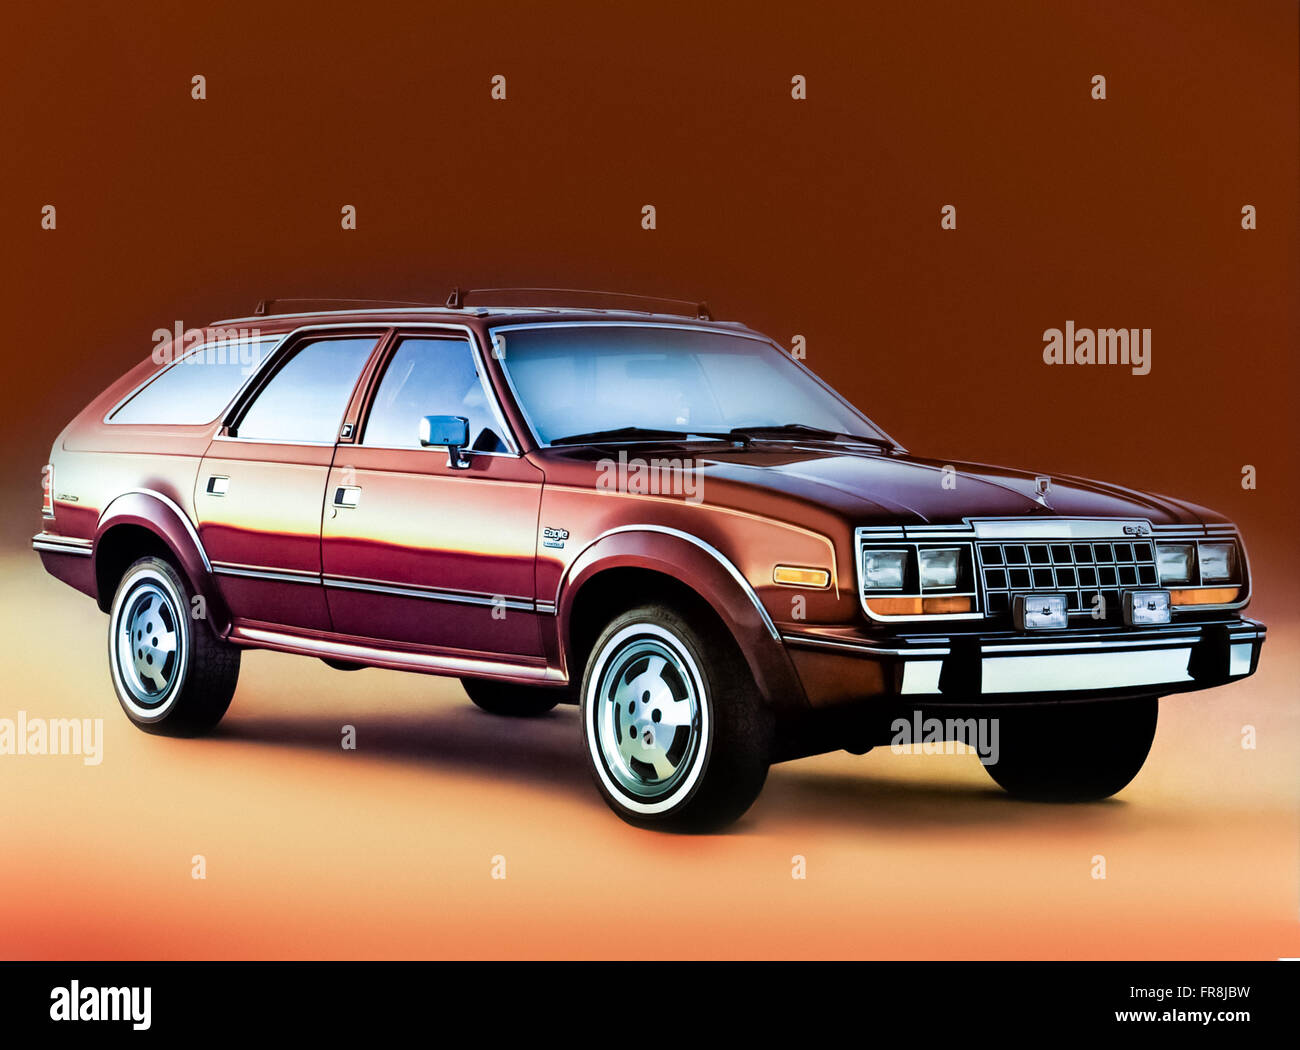 AMC Eagle produced by American Motors Corporation (AMC) from 1979 ...